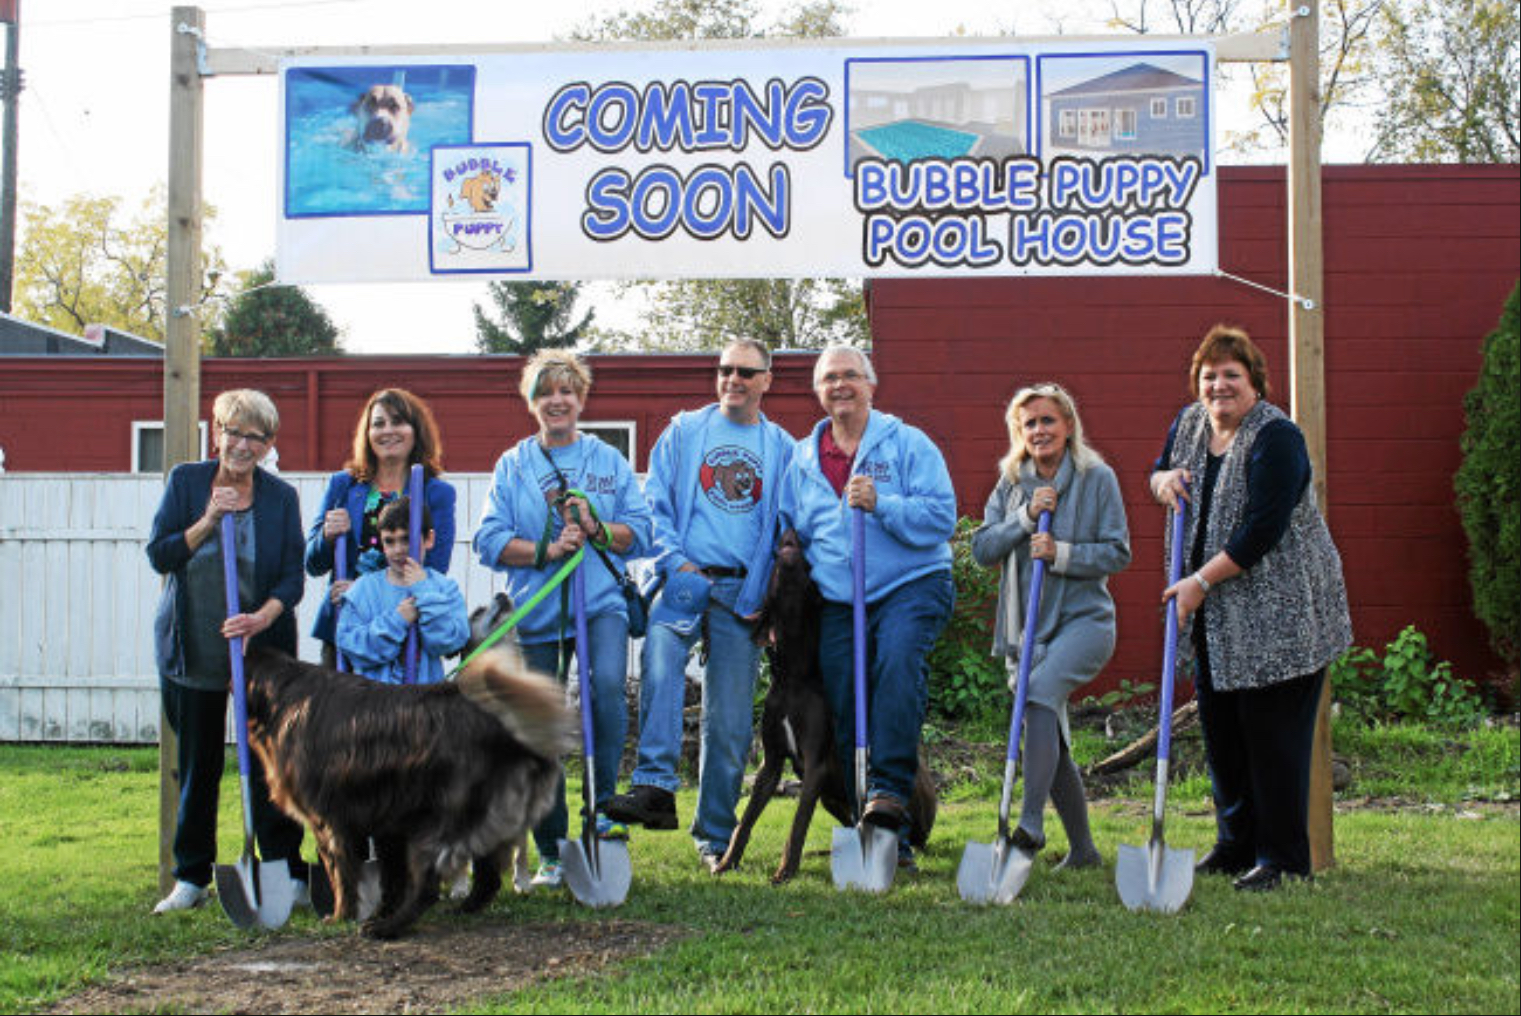 U.S. Rep. Debbie Dingell (D-12th District), second from right, and Trenton Mayor Kyle Stack (far right) were on hand for the ceremonial groundbreaking of the Bubble Puppy Pool House in downtown Trenton, Nov. 1, 2016.  Photo credit: Constance York for The News Herald